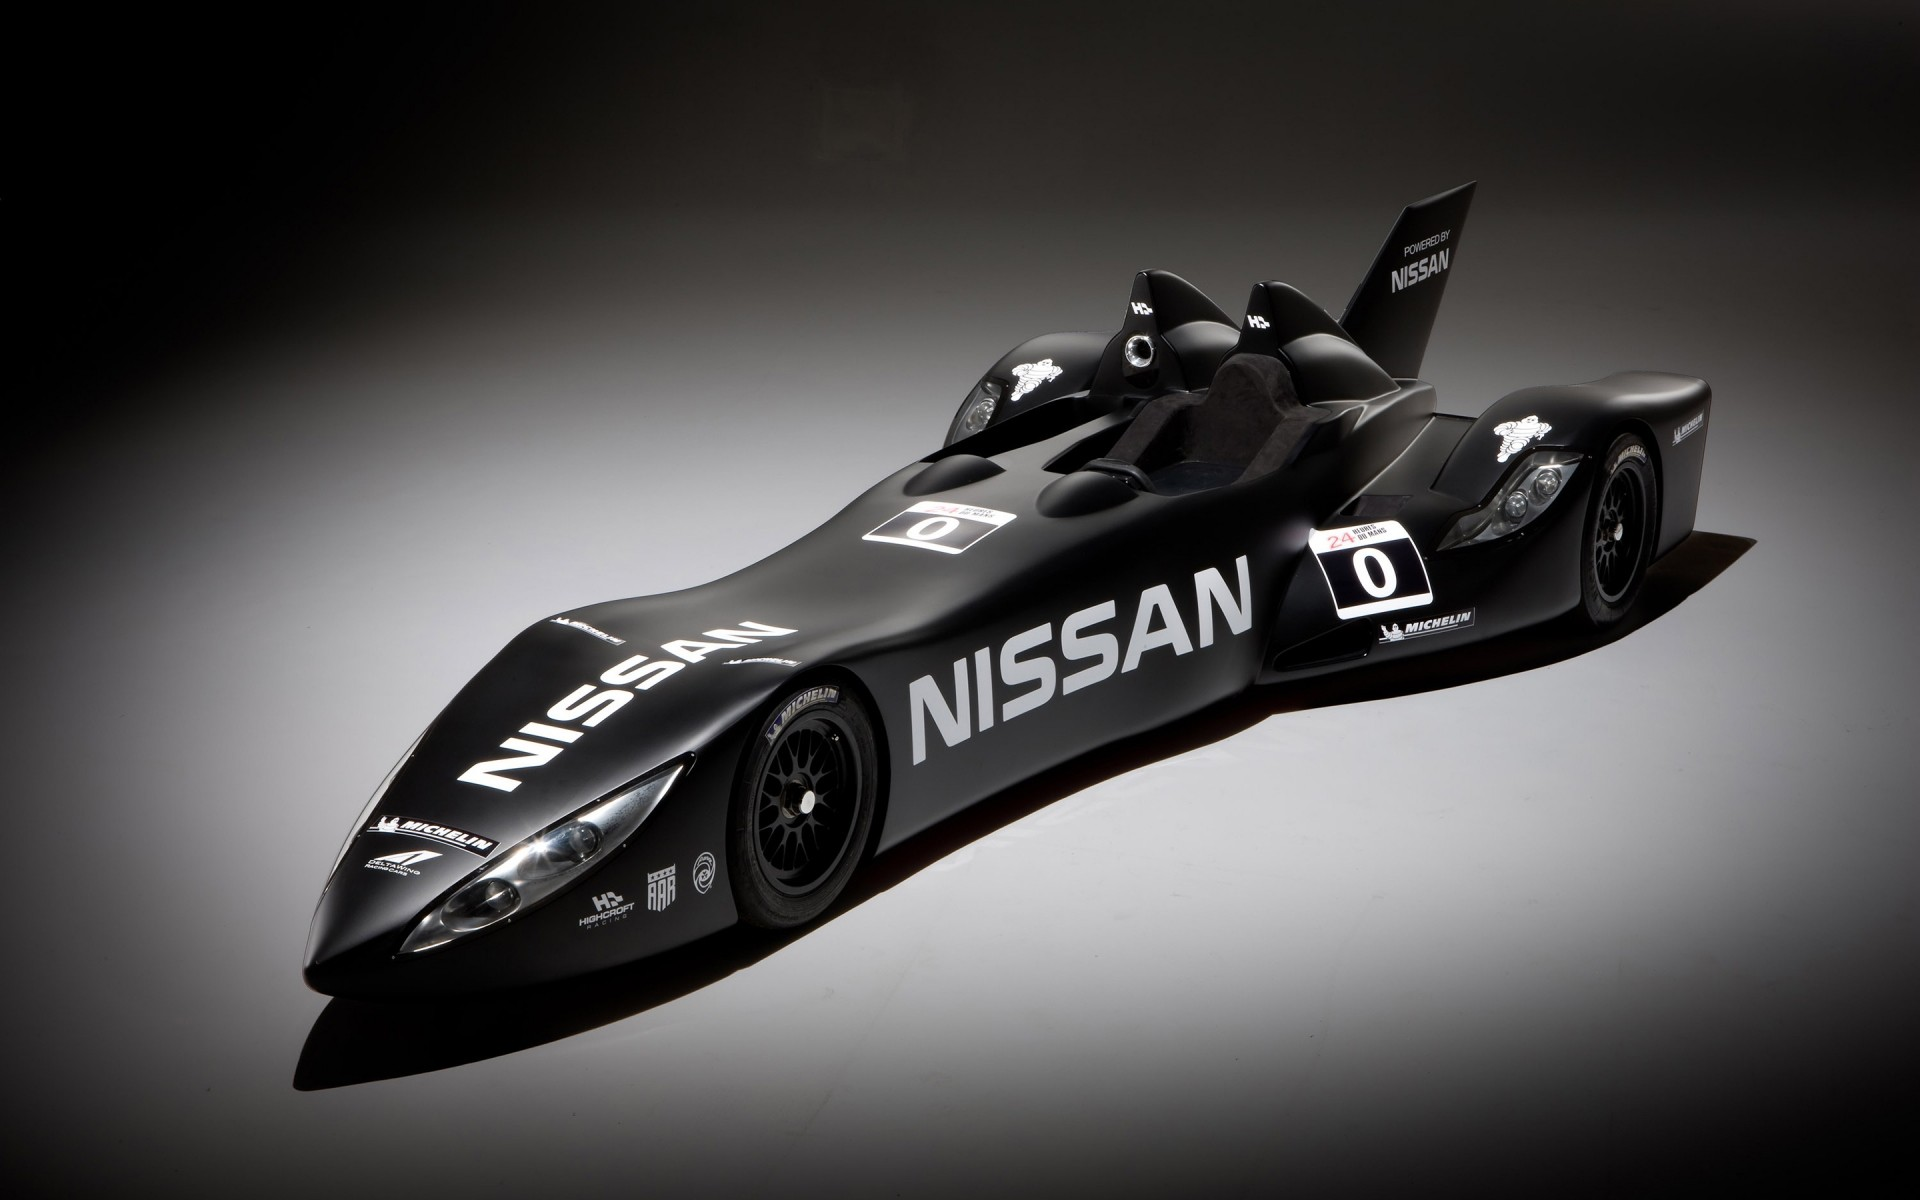 Nissan DeltaWing экспериментальная болид